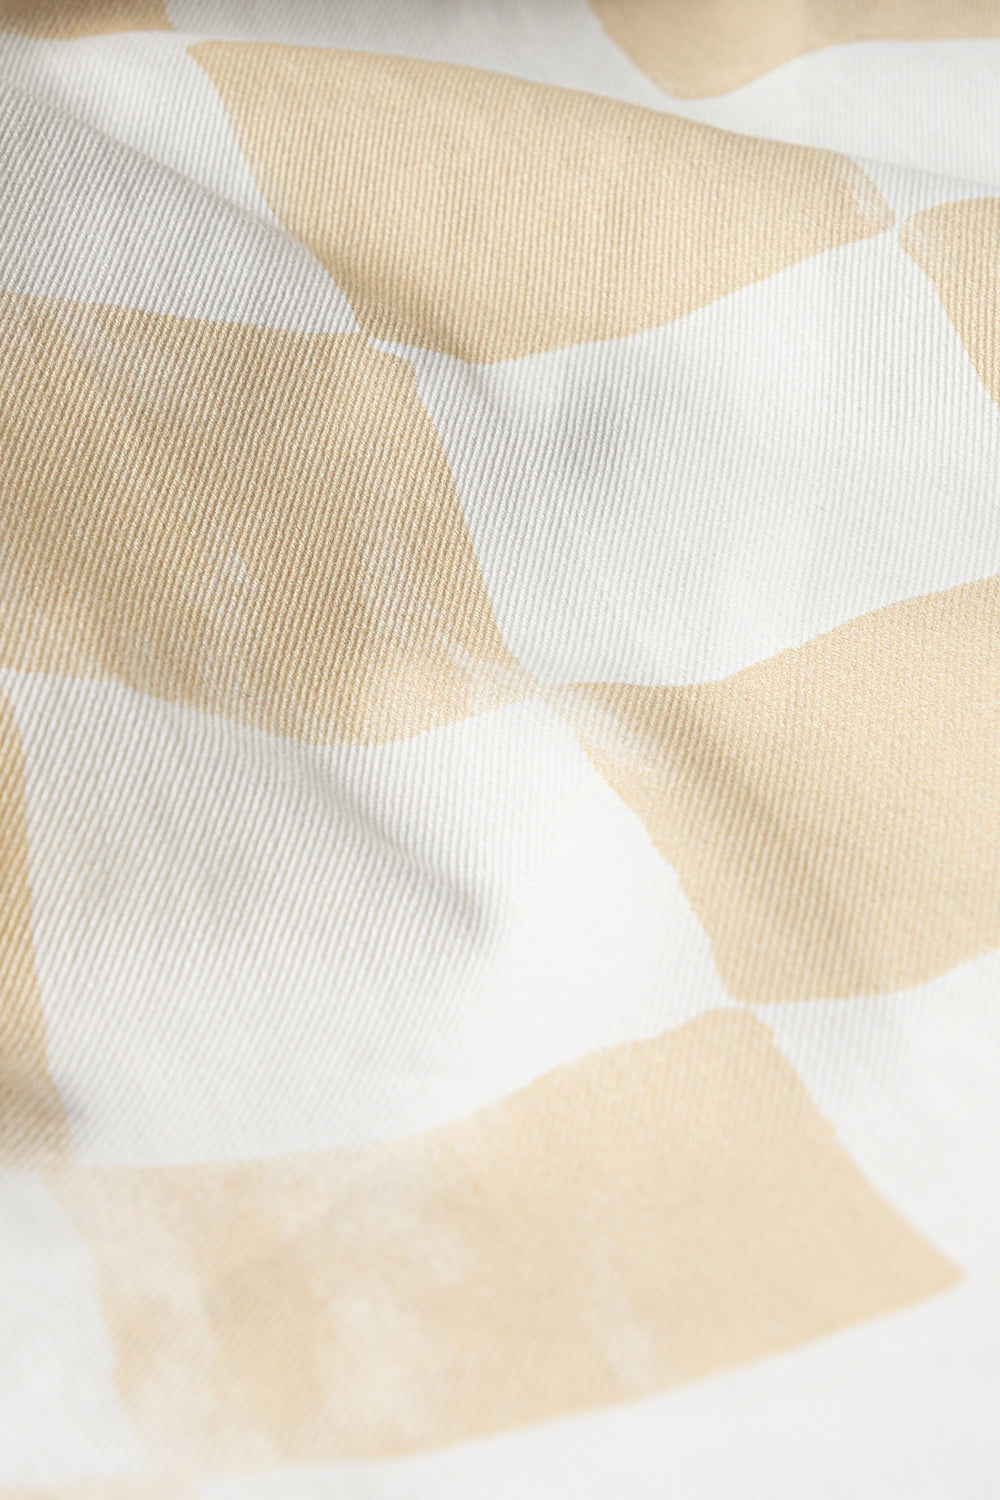 reception-club-pant-twill-white-beige-fabric